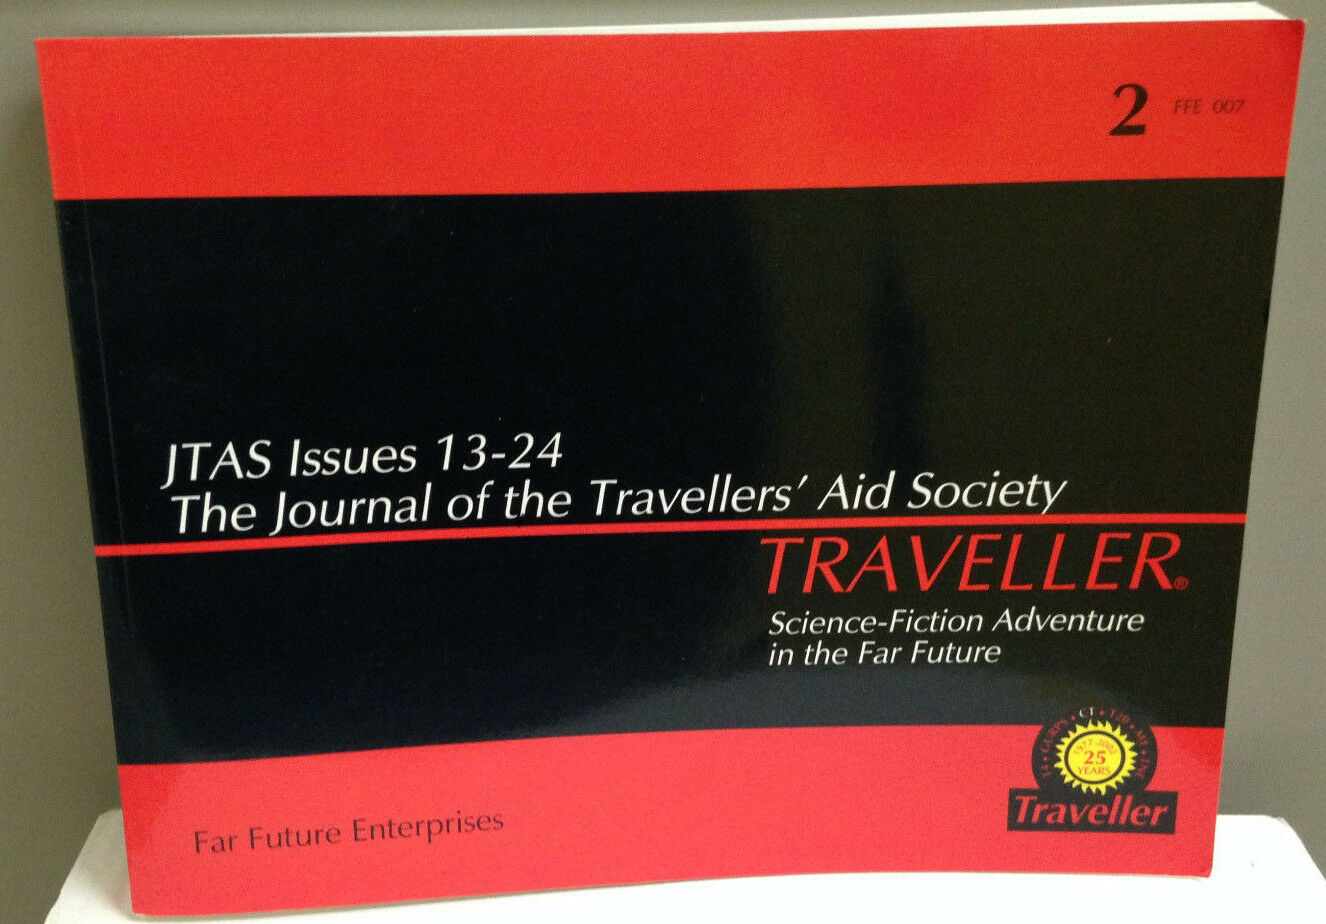 The Journal of the Travellers Aid Society - Issues 13-24 - New